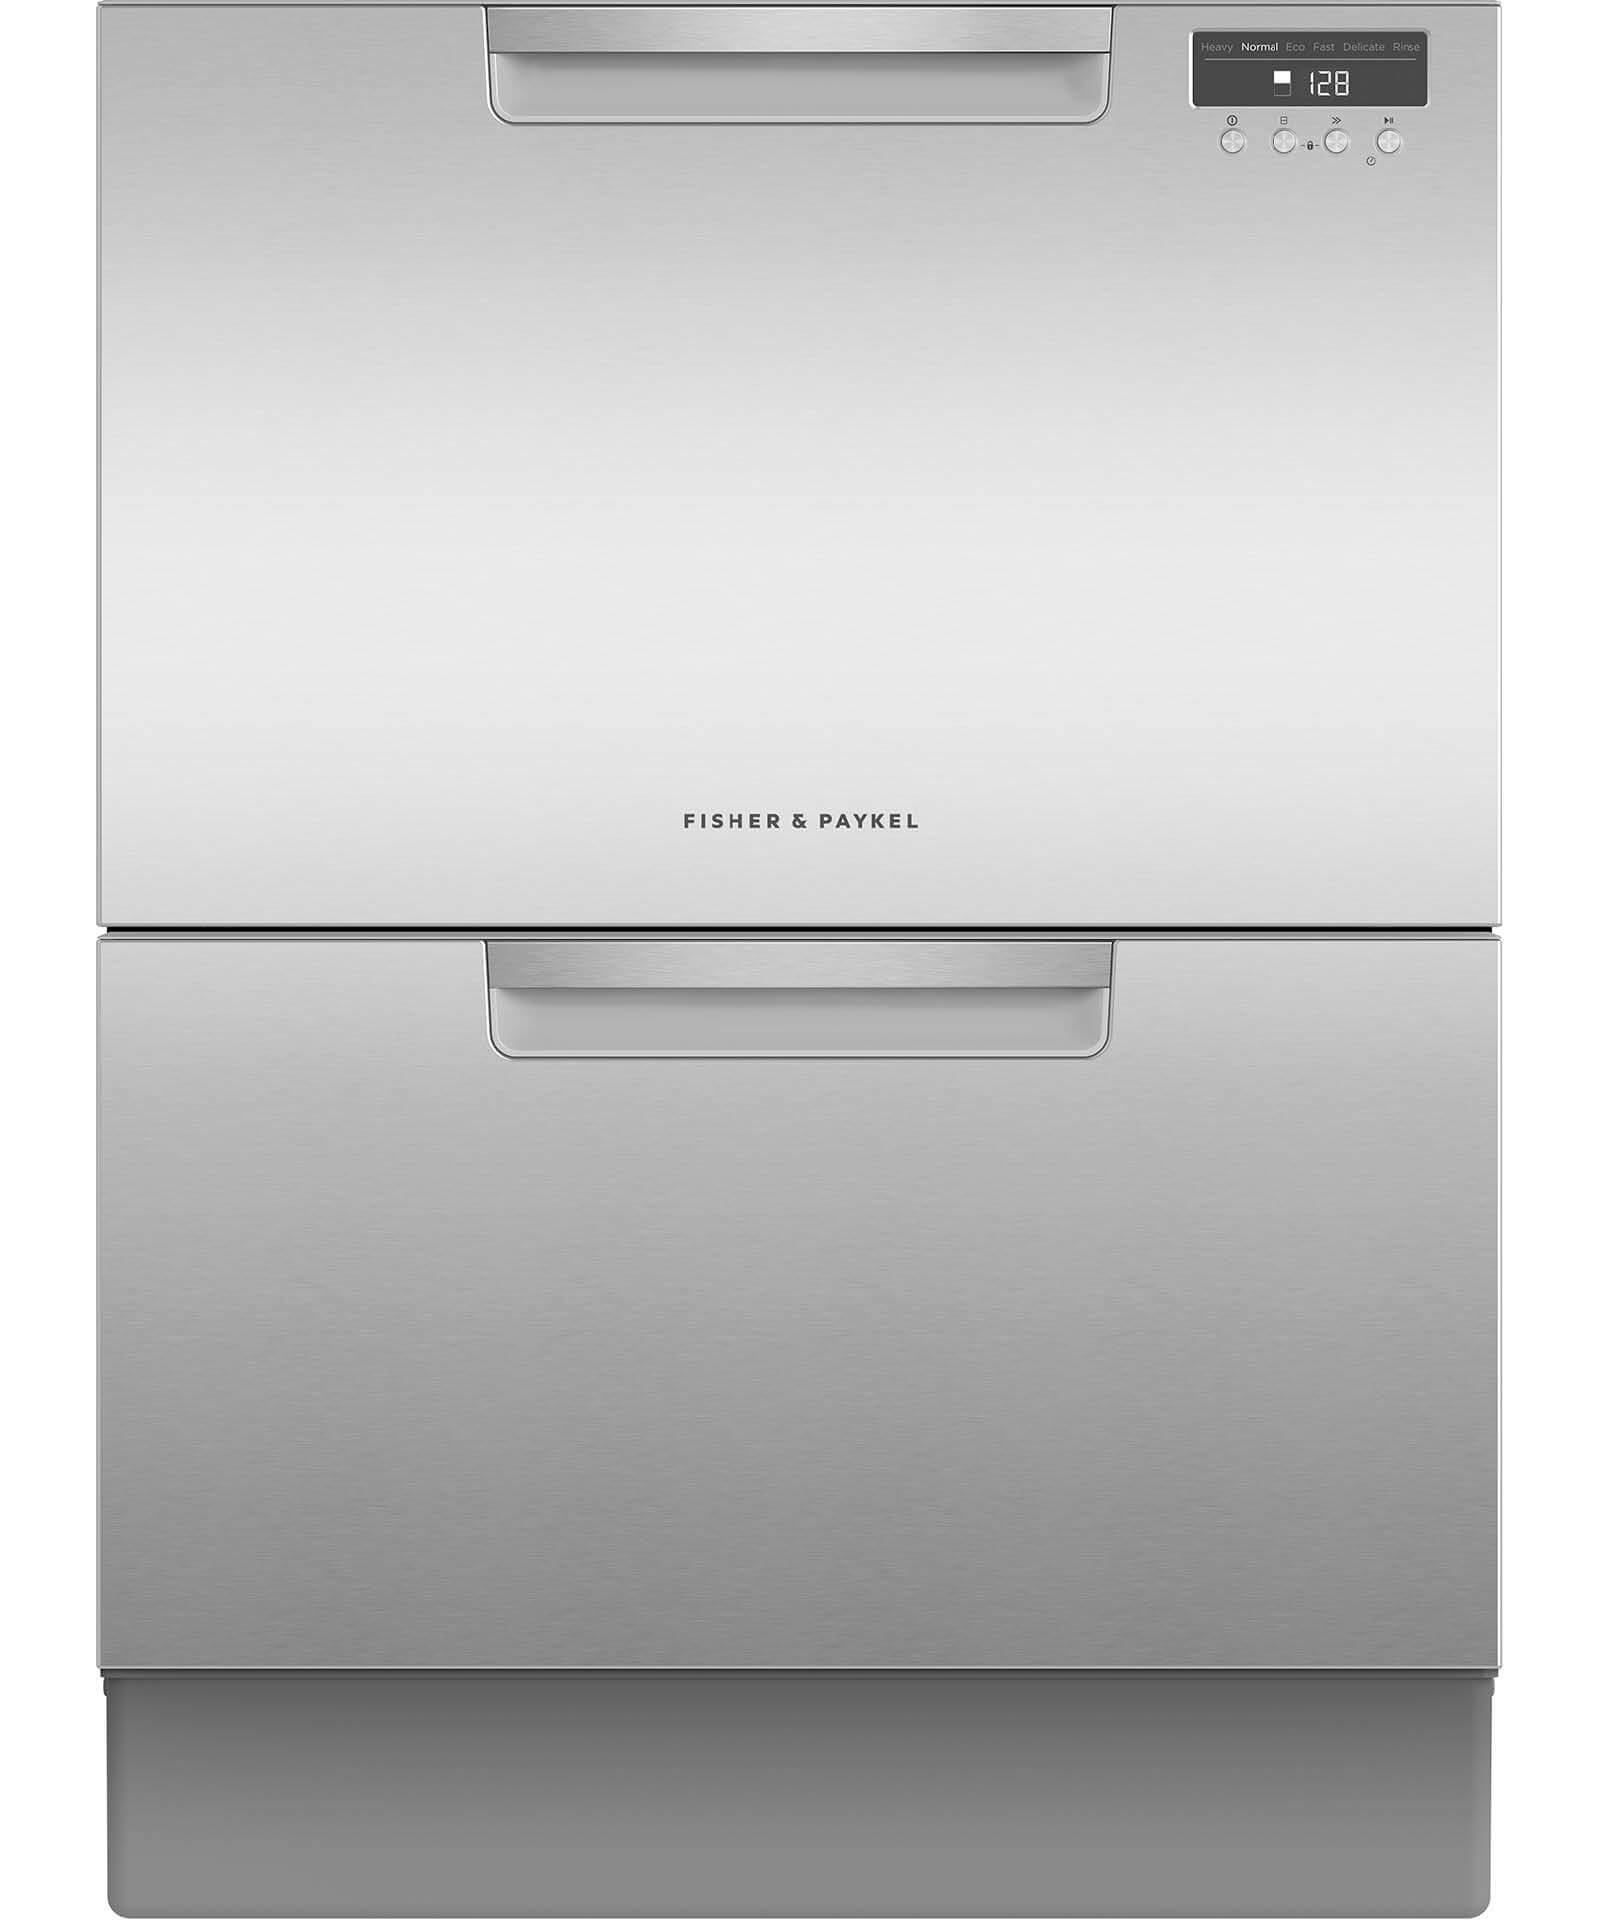 DD60DAHX9 - Double DishDrawer™ Dishwasher with water softener - 81610